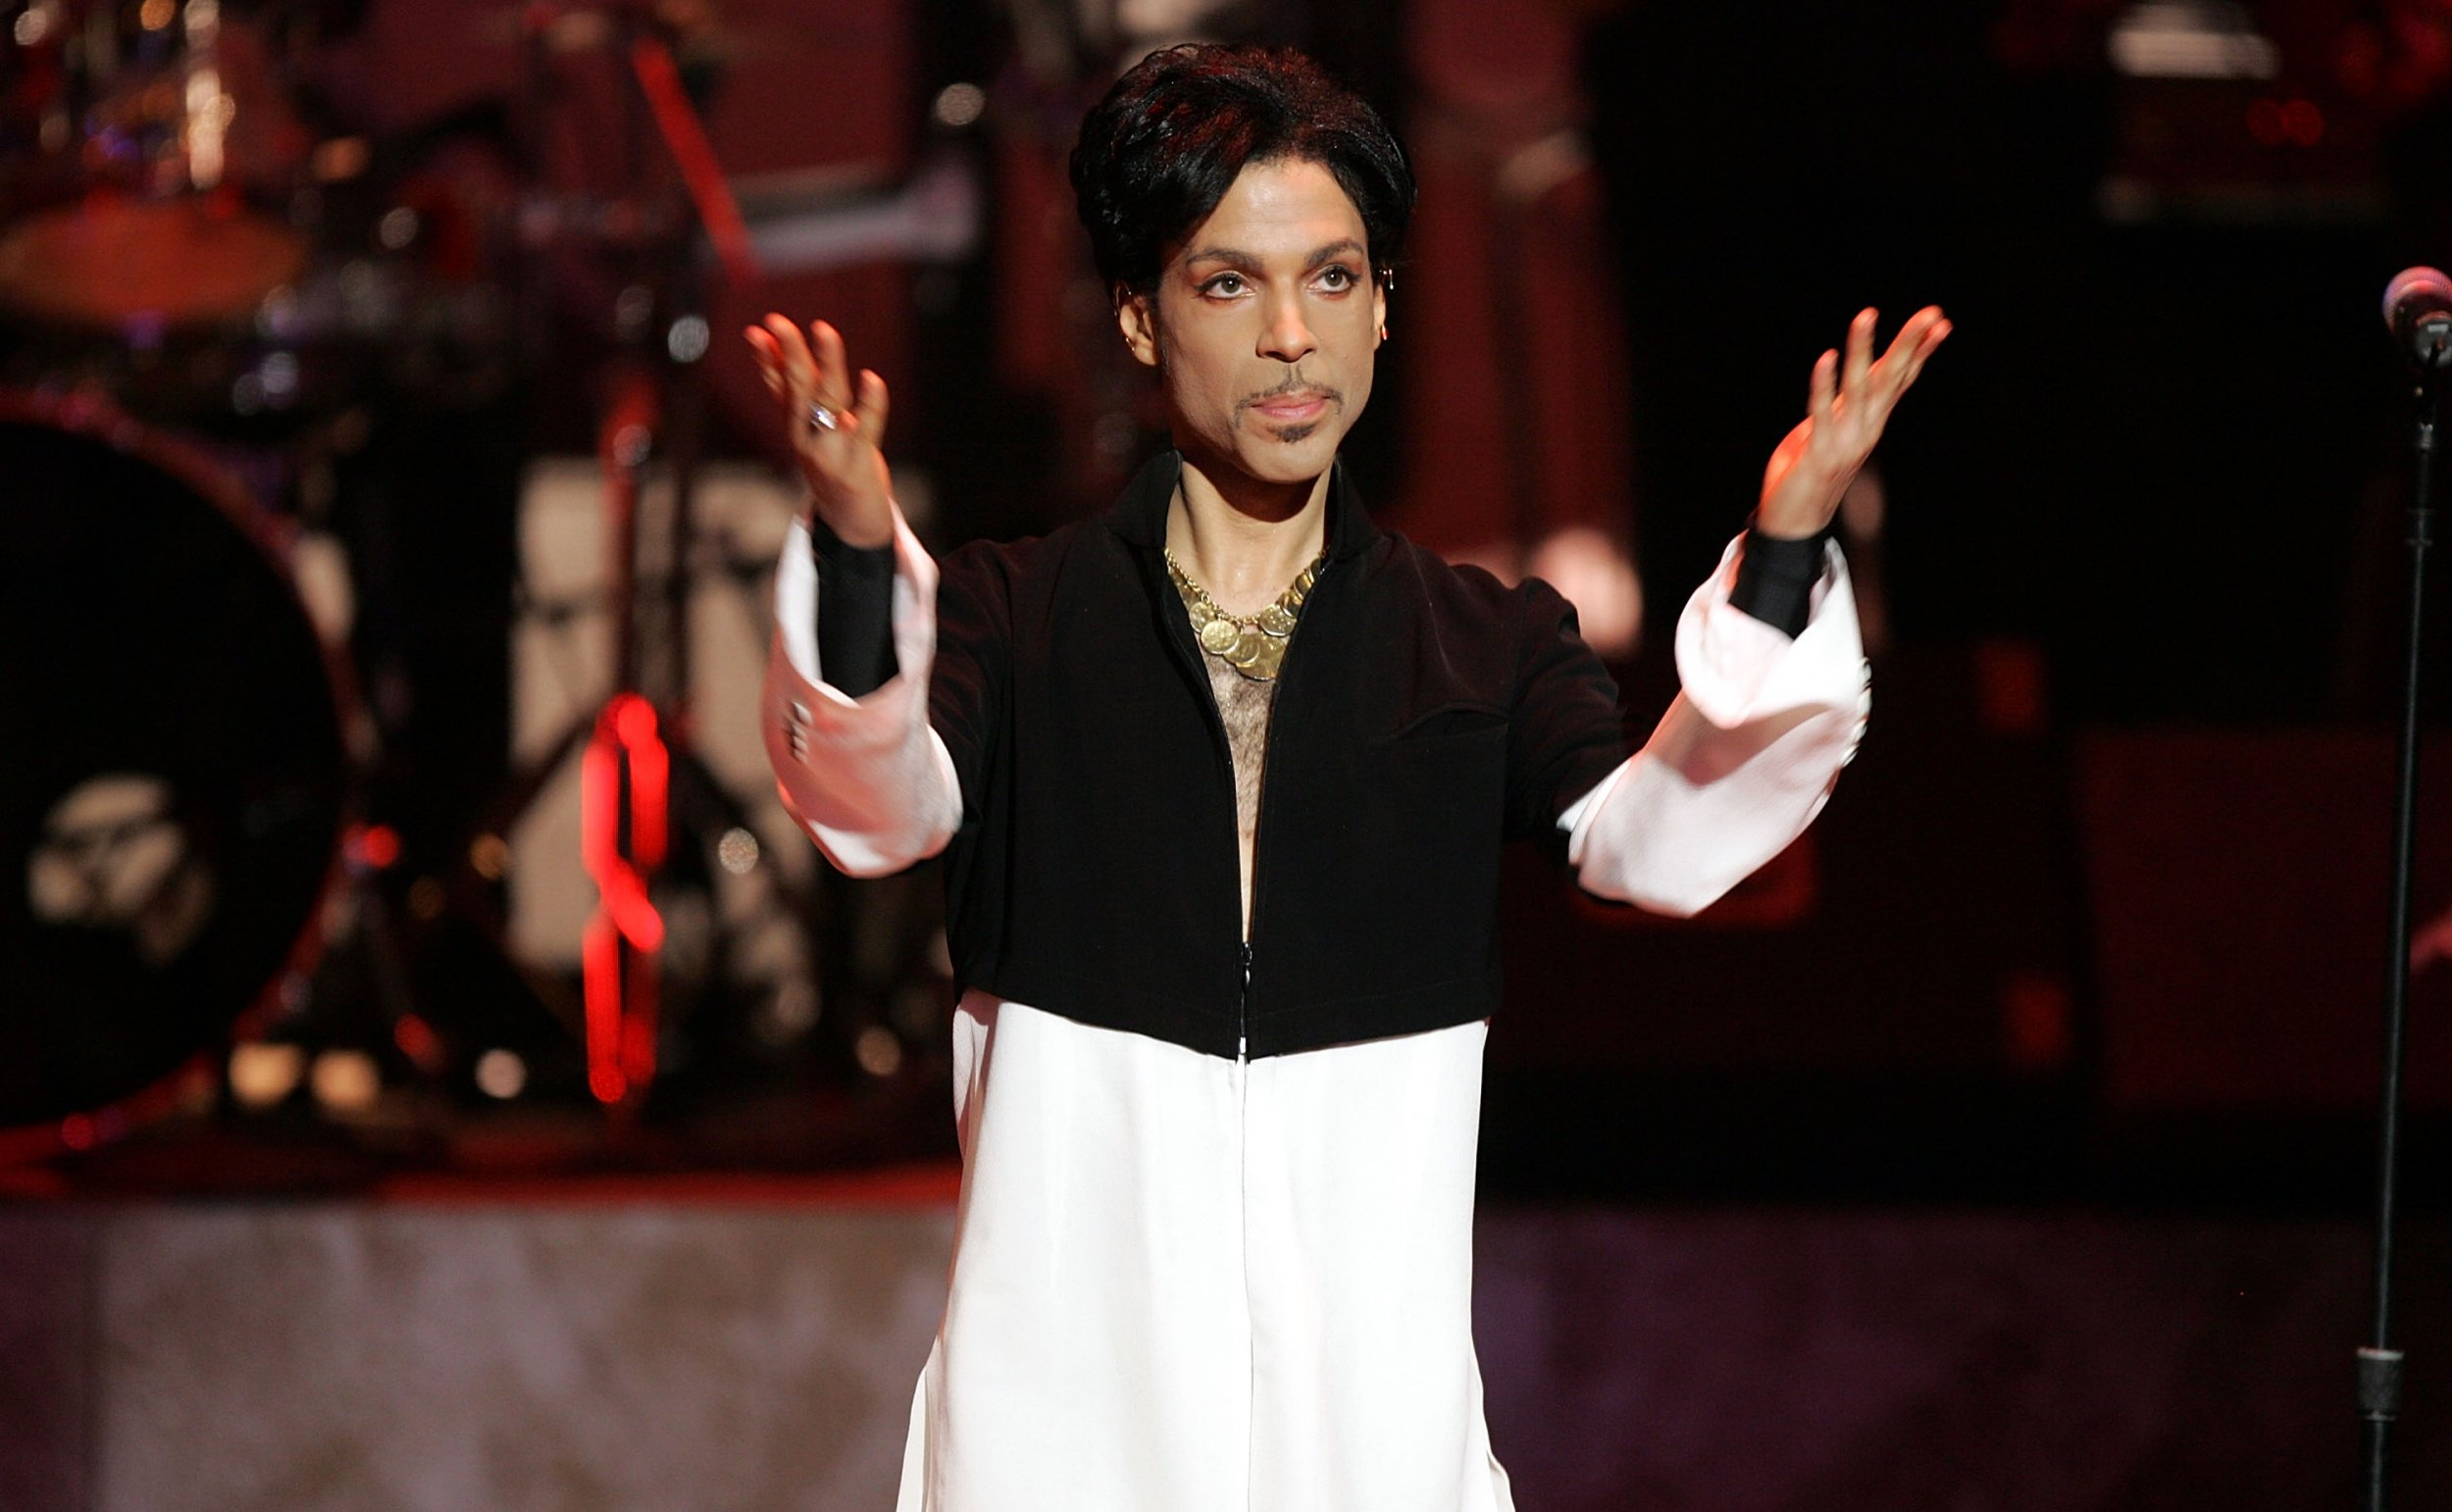 Prince on stage in 2005